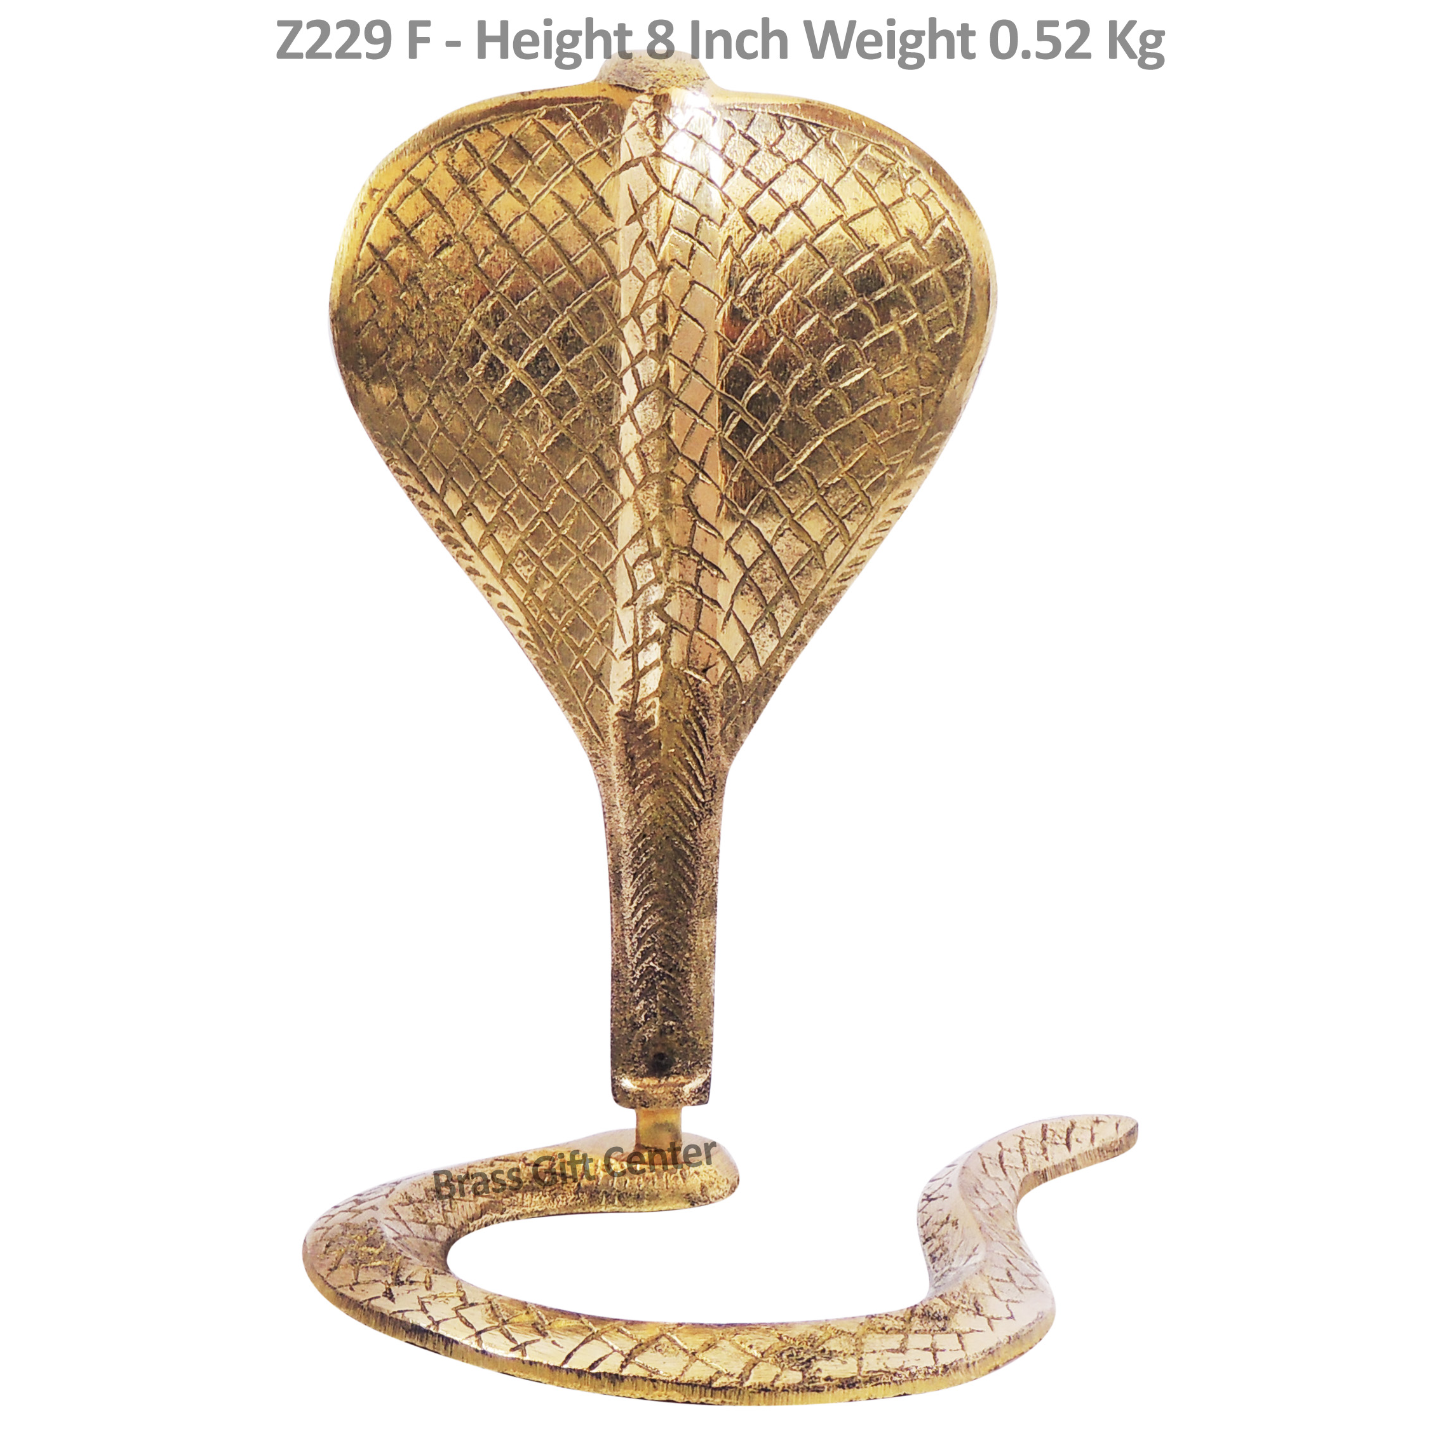 Brass Snake (Saap) For Shivling With Brass Finish, Height 8 Inch (Z299 F)